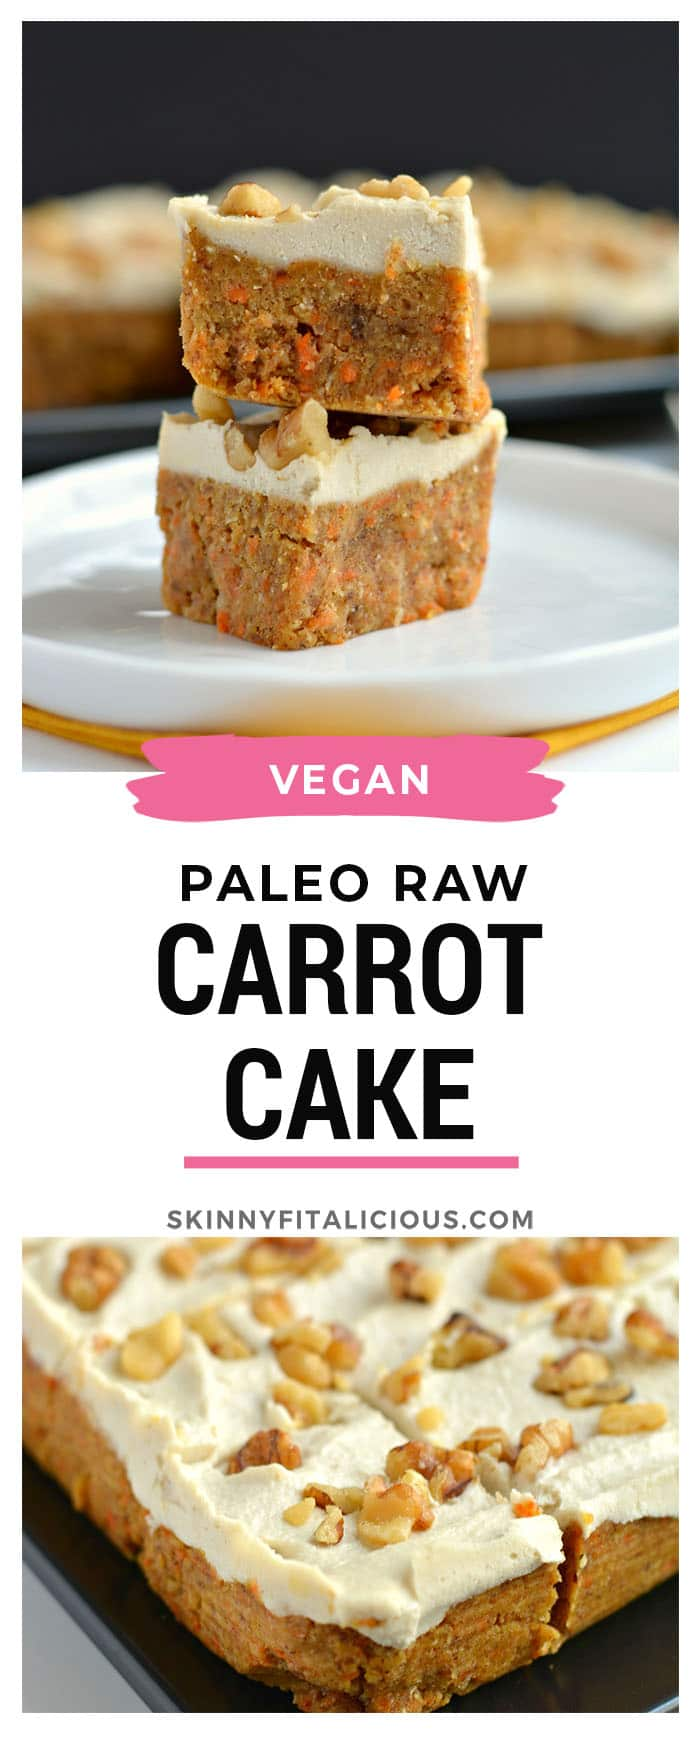 Paleo Raw Carrot Cake is a spin on a traditional favorite! Made with a carrot, date and walnut base, this delicious cake is topped with a silky cashew maple coconut icing that's surprisingly healthy and good for you. This is what carrot cake dreams are made of!  Paleo + Gluten Free + Vegan + Low Calorie